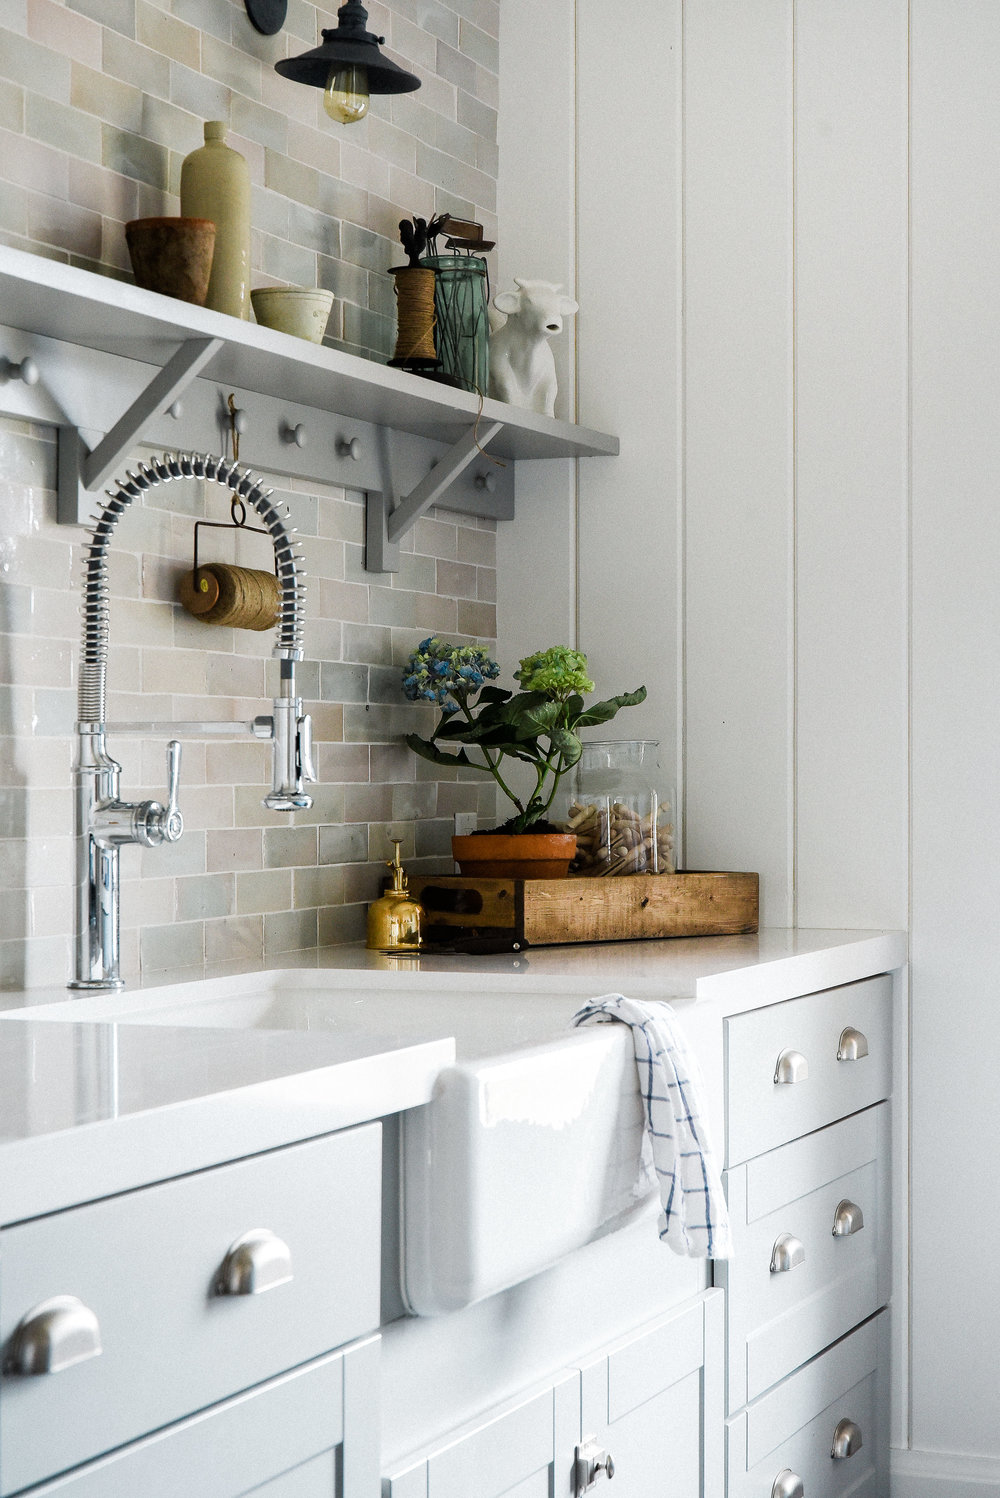 Laundry room remodel with gray cabinets and farm sink. White shiplap walls with shelf and cle tile. #laundryroom #farmhousestyle